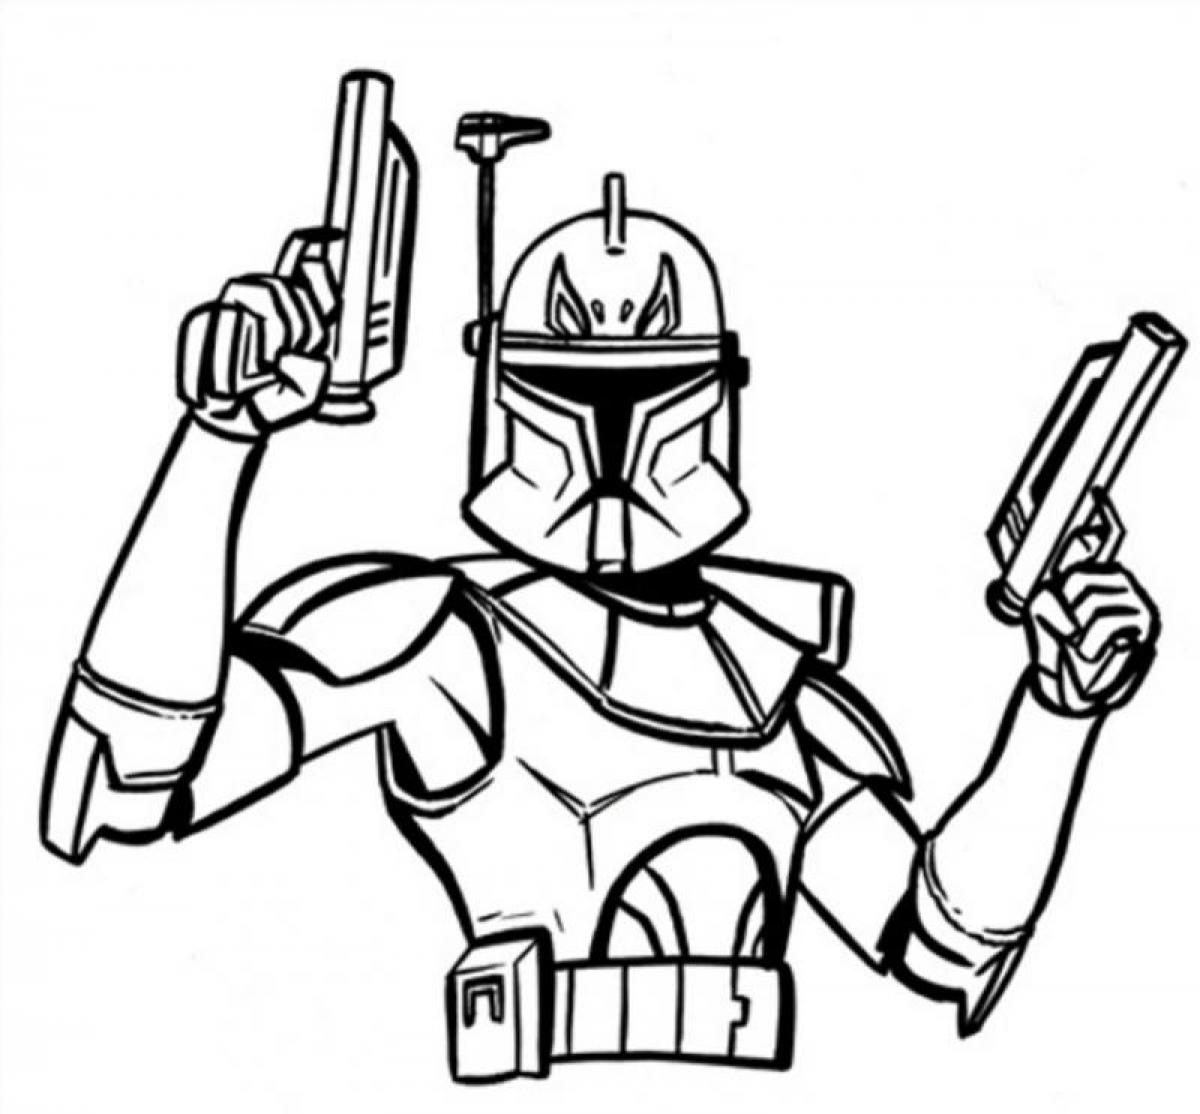 Coloring Pages Captain Rex Coloring Pages wonderful captain rex star wars colouring pagesstar coloring download coloring